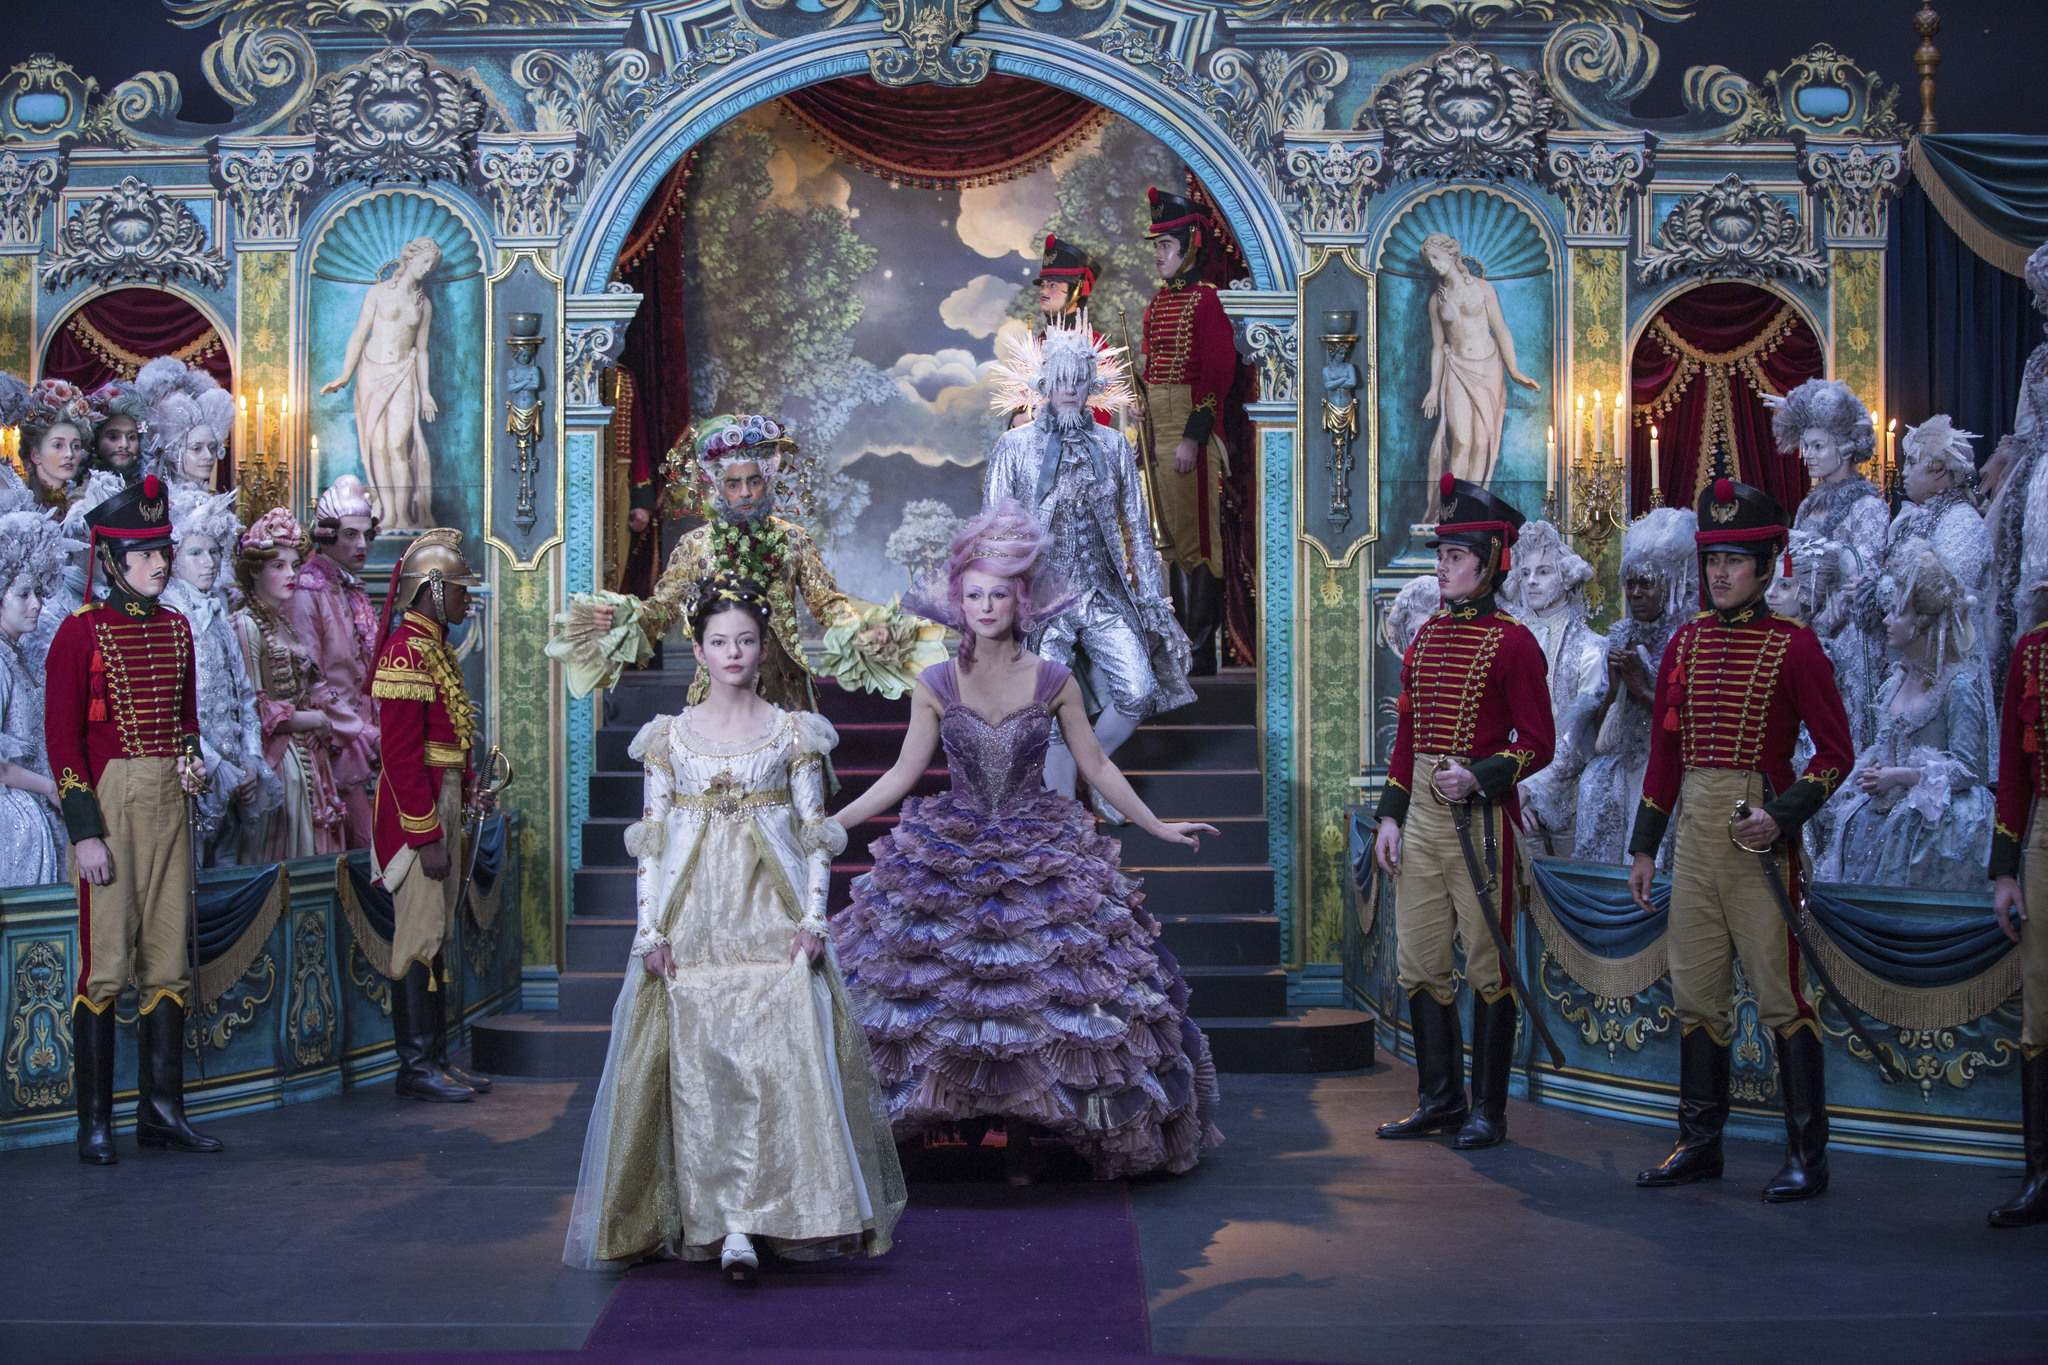 Mackenzie Foy is Clara, Keira Knightley is Sugar Plum Fairy, Jaden Fowara-Knight is Phillip, Eugenio Derbez is Hawthorne and Richard E. Grant is Shiver. (Disney photos)